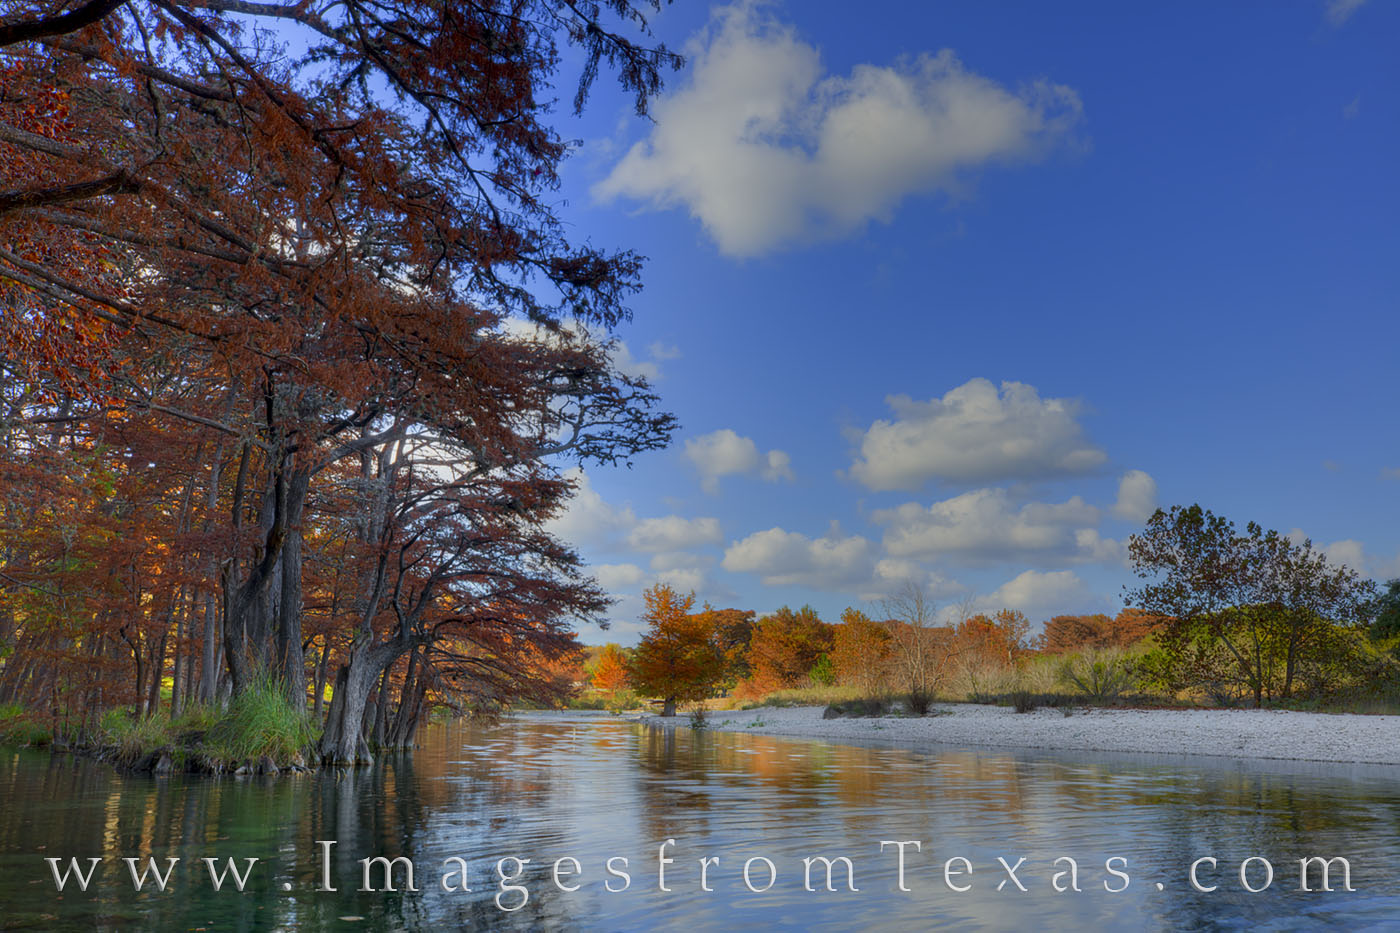 garner state park, texas hill country, fall colors, autumn colors, frio river, frio images, frio, garner images, garner state park images, texas state parks, texas fall colors, texas autumn colors, te, photo